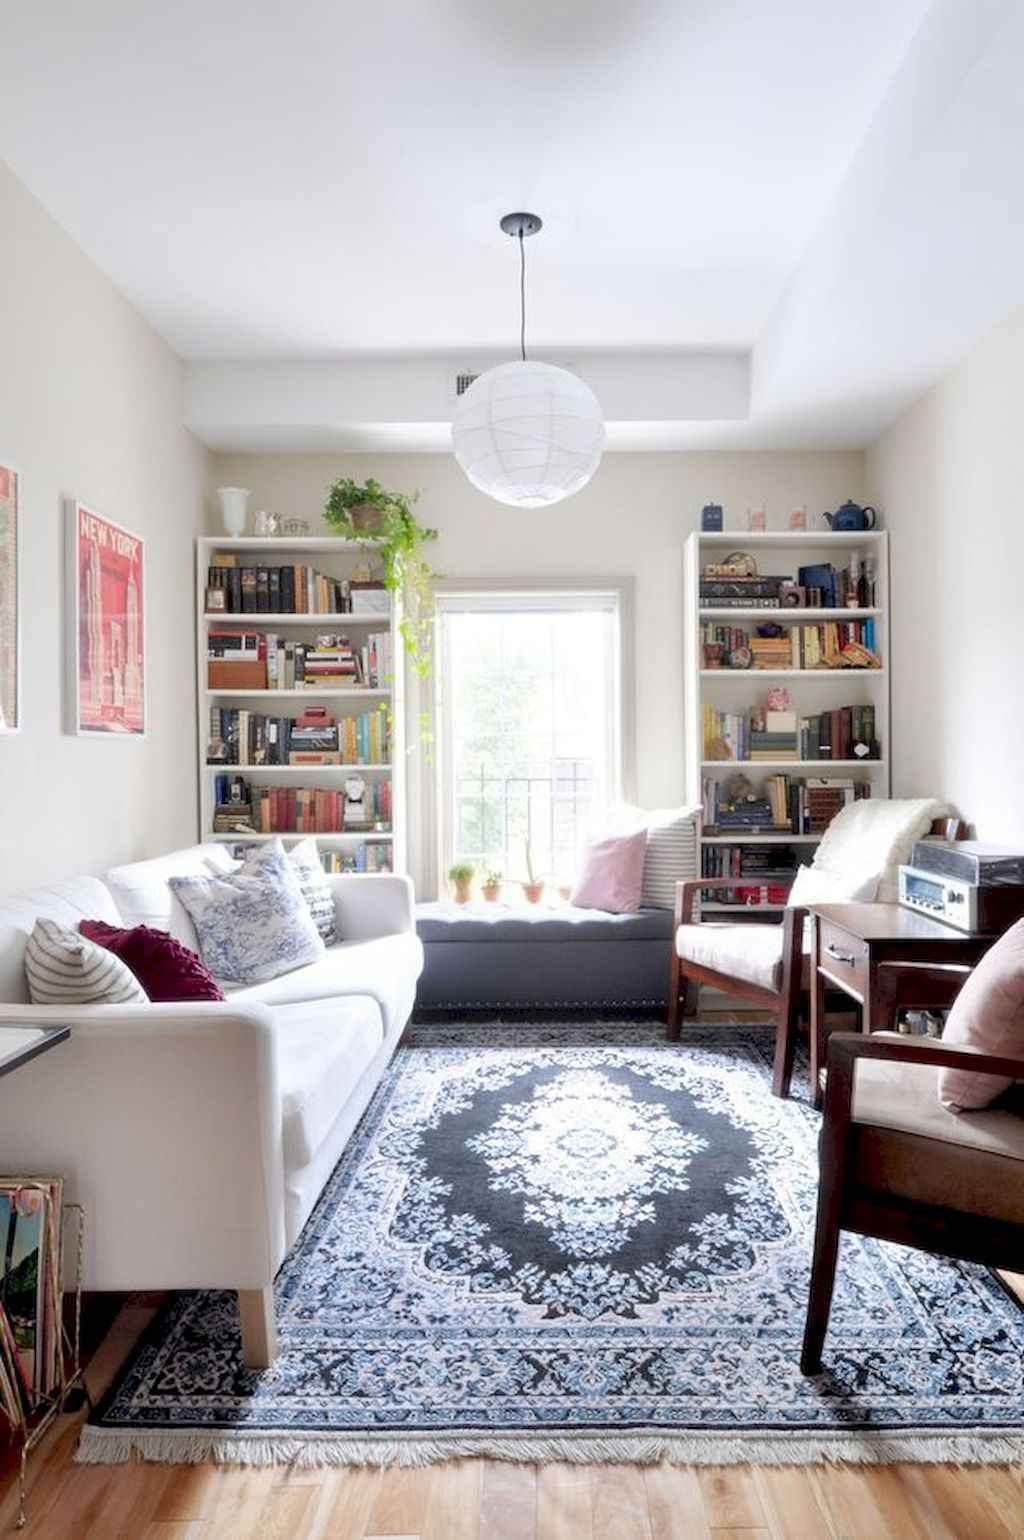 Awesome apartment living room decorating ideas (29)